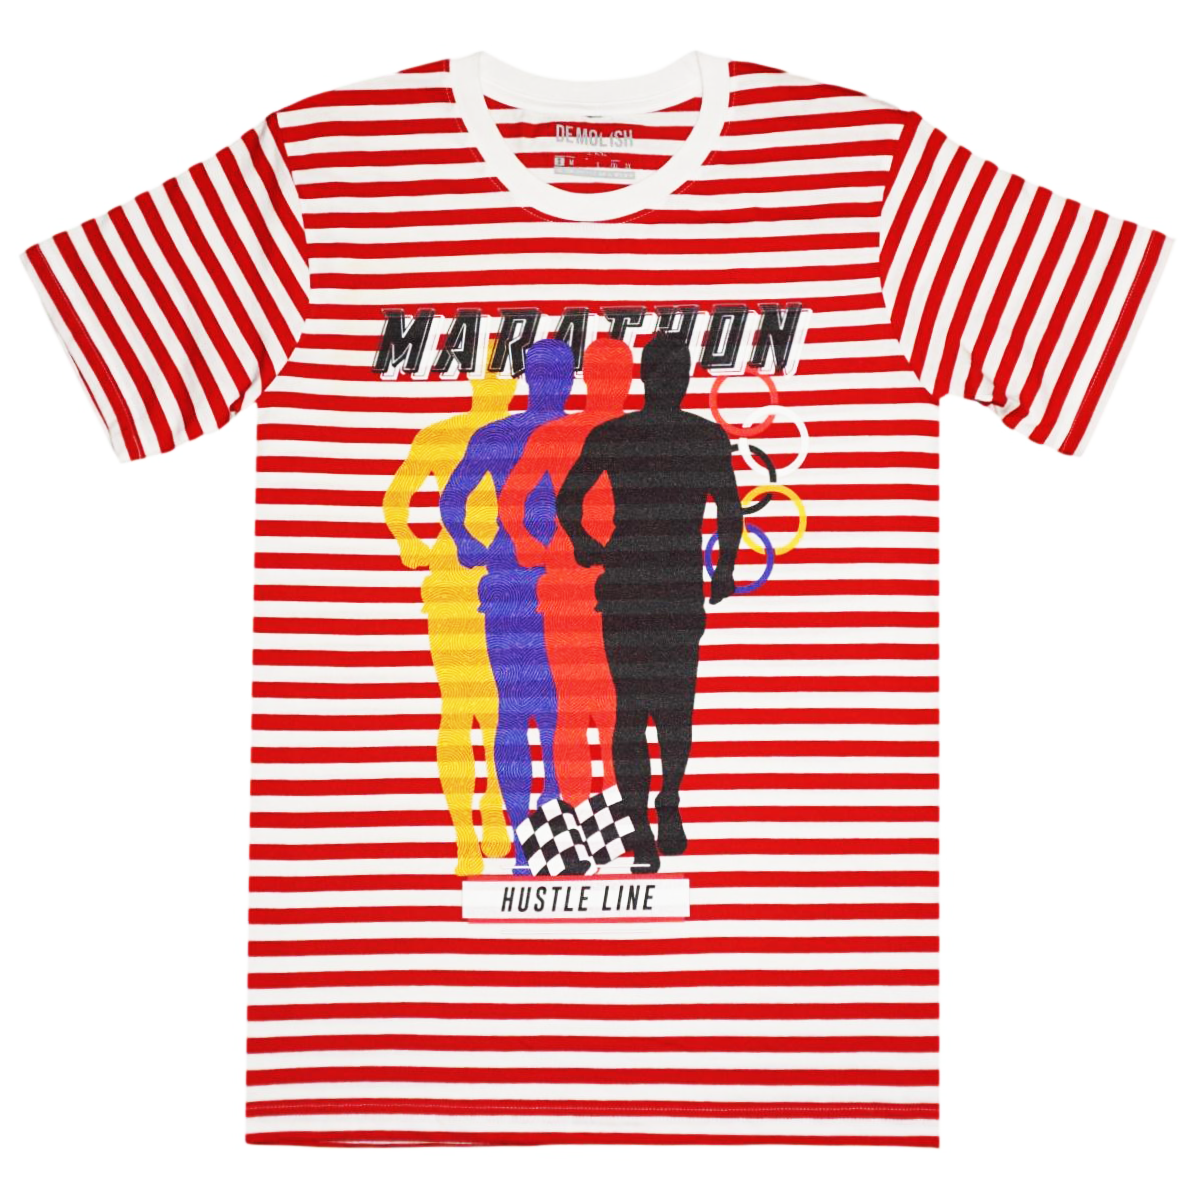 Marathon Red/Wte Stripe Tee (Red) /D2